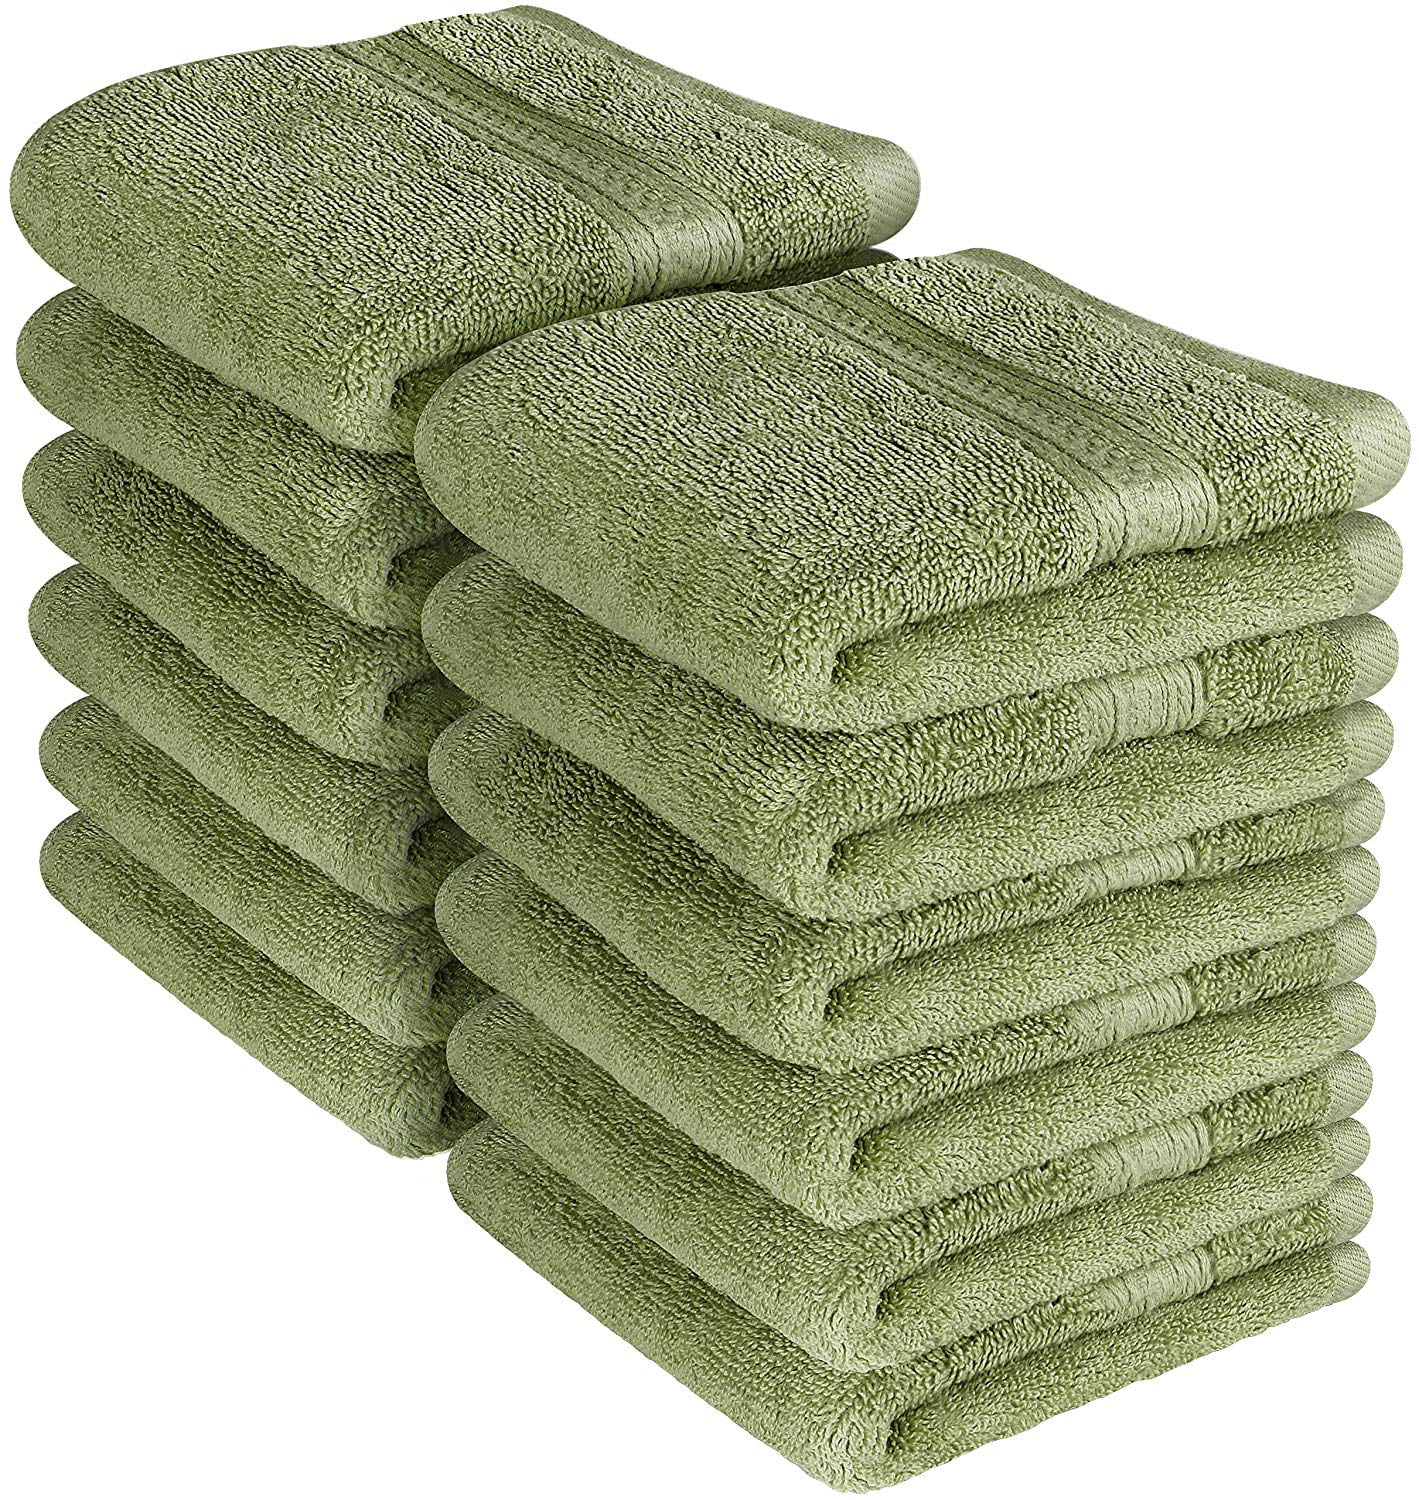 Premium 700 GSM Washcloths Towels Set 12 Pack, Sea Green, 12 x 12 Inches Multipurpose Extra Soft Fingertip... by Beauty Threadz